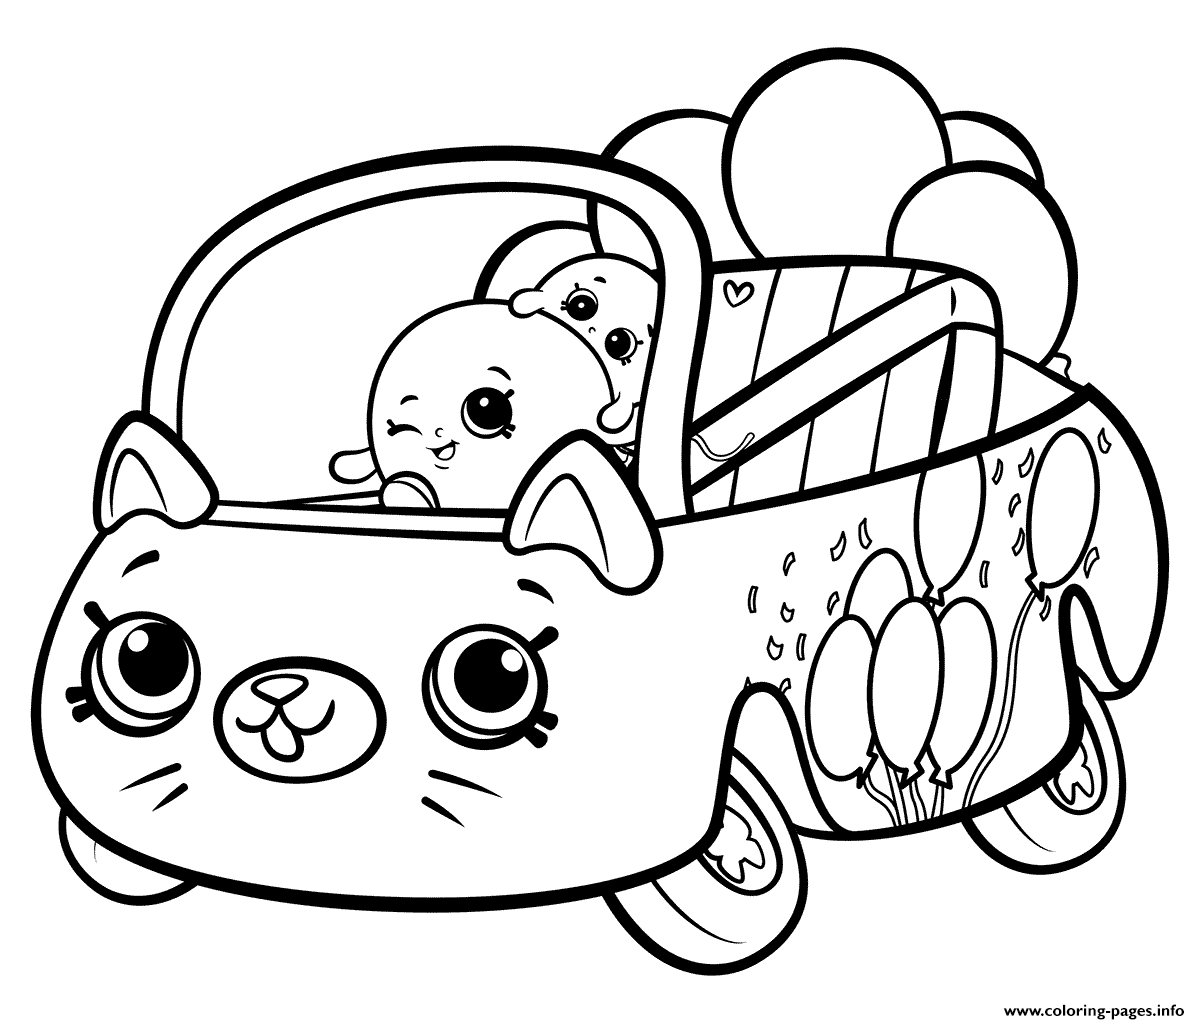 Print Shopkins Cutie Cars Bumper Balloons Coloring Pages Shopkins Colouring Pages Cars Coloring Pages Cute Coloring Pages